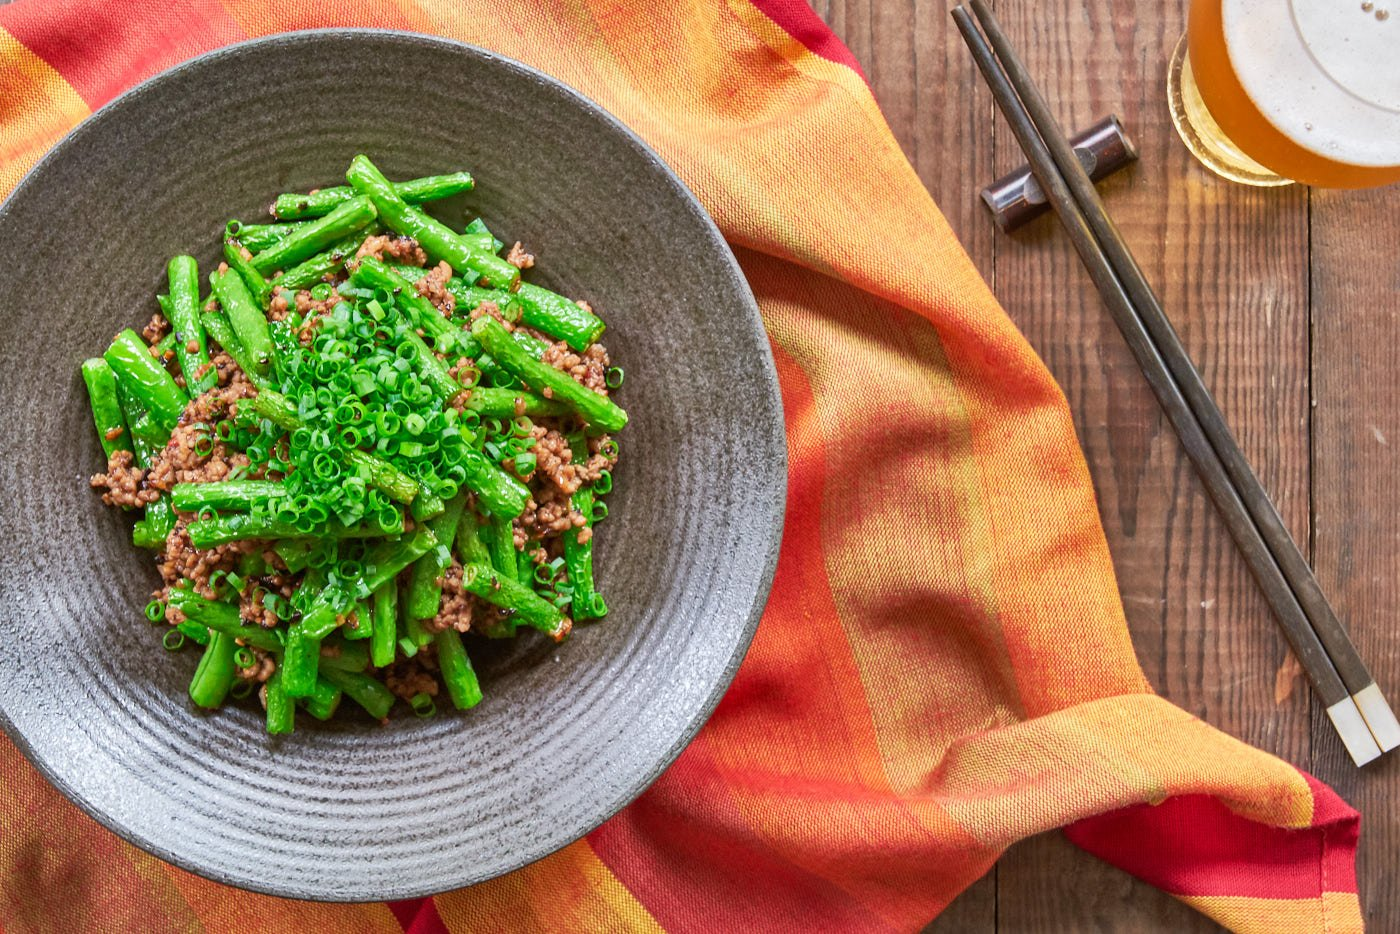 With tender vivid green green beans stir-fried with pork and a chili garlic black bean sauce, this easy delicious stir-fry comes together in just minutes.